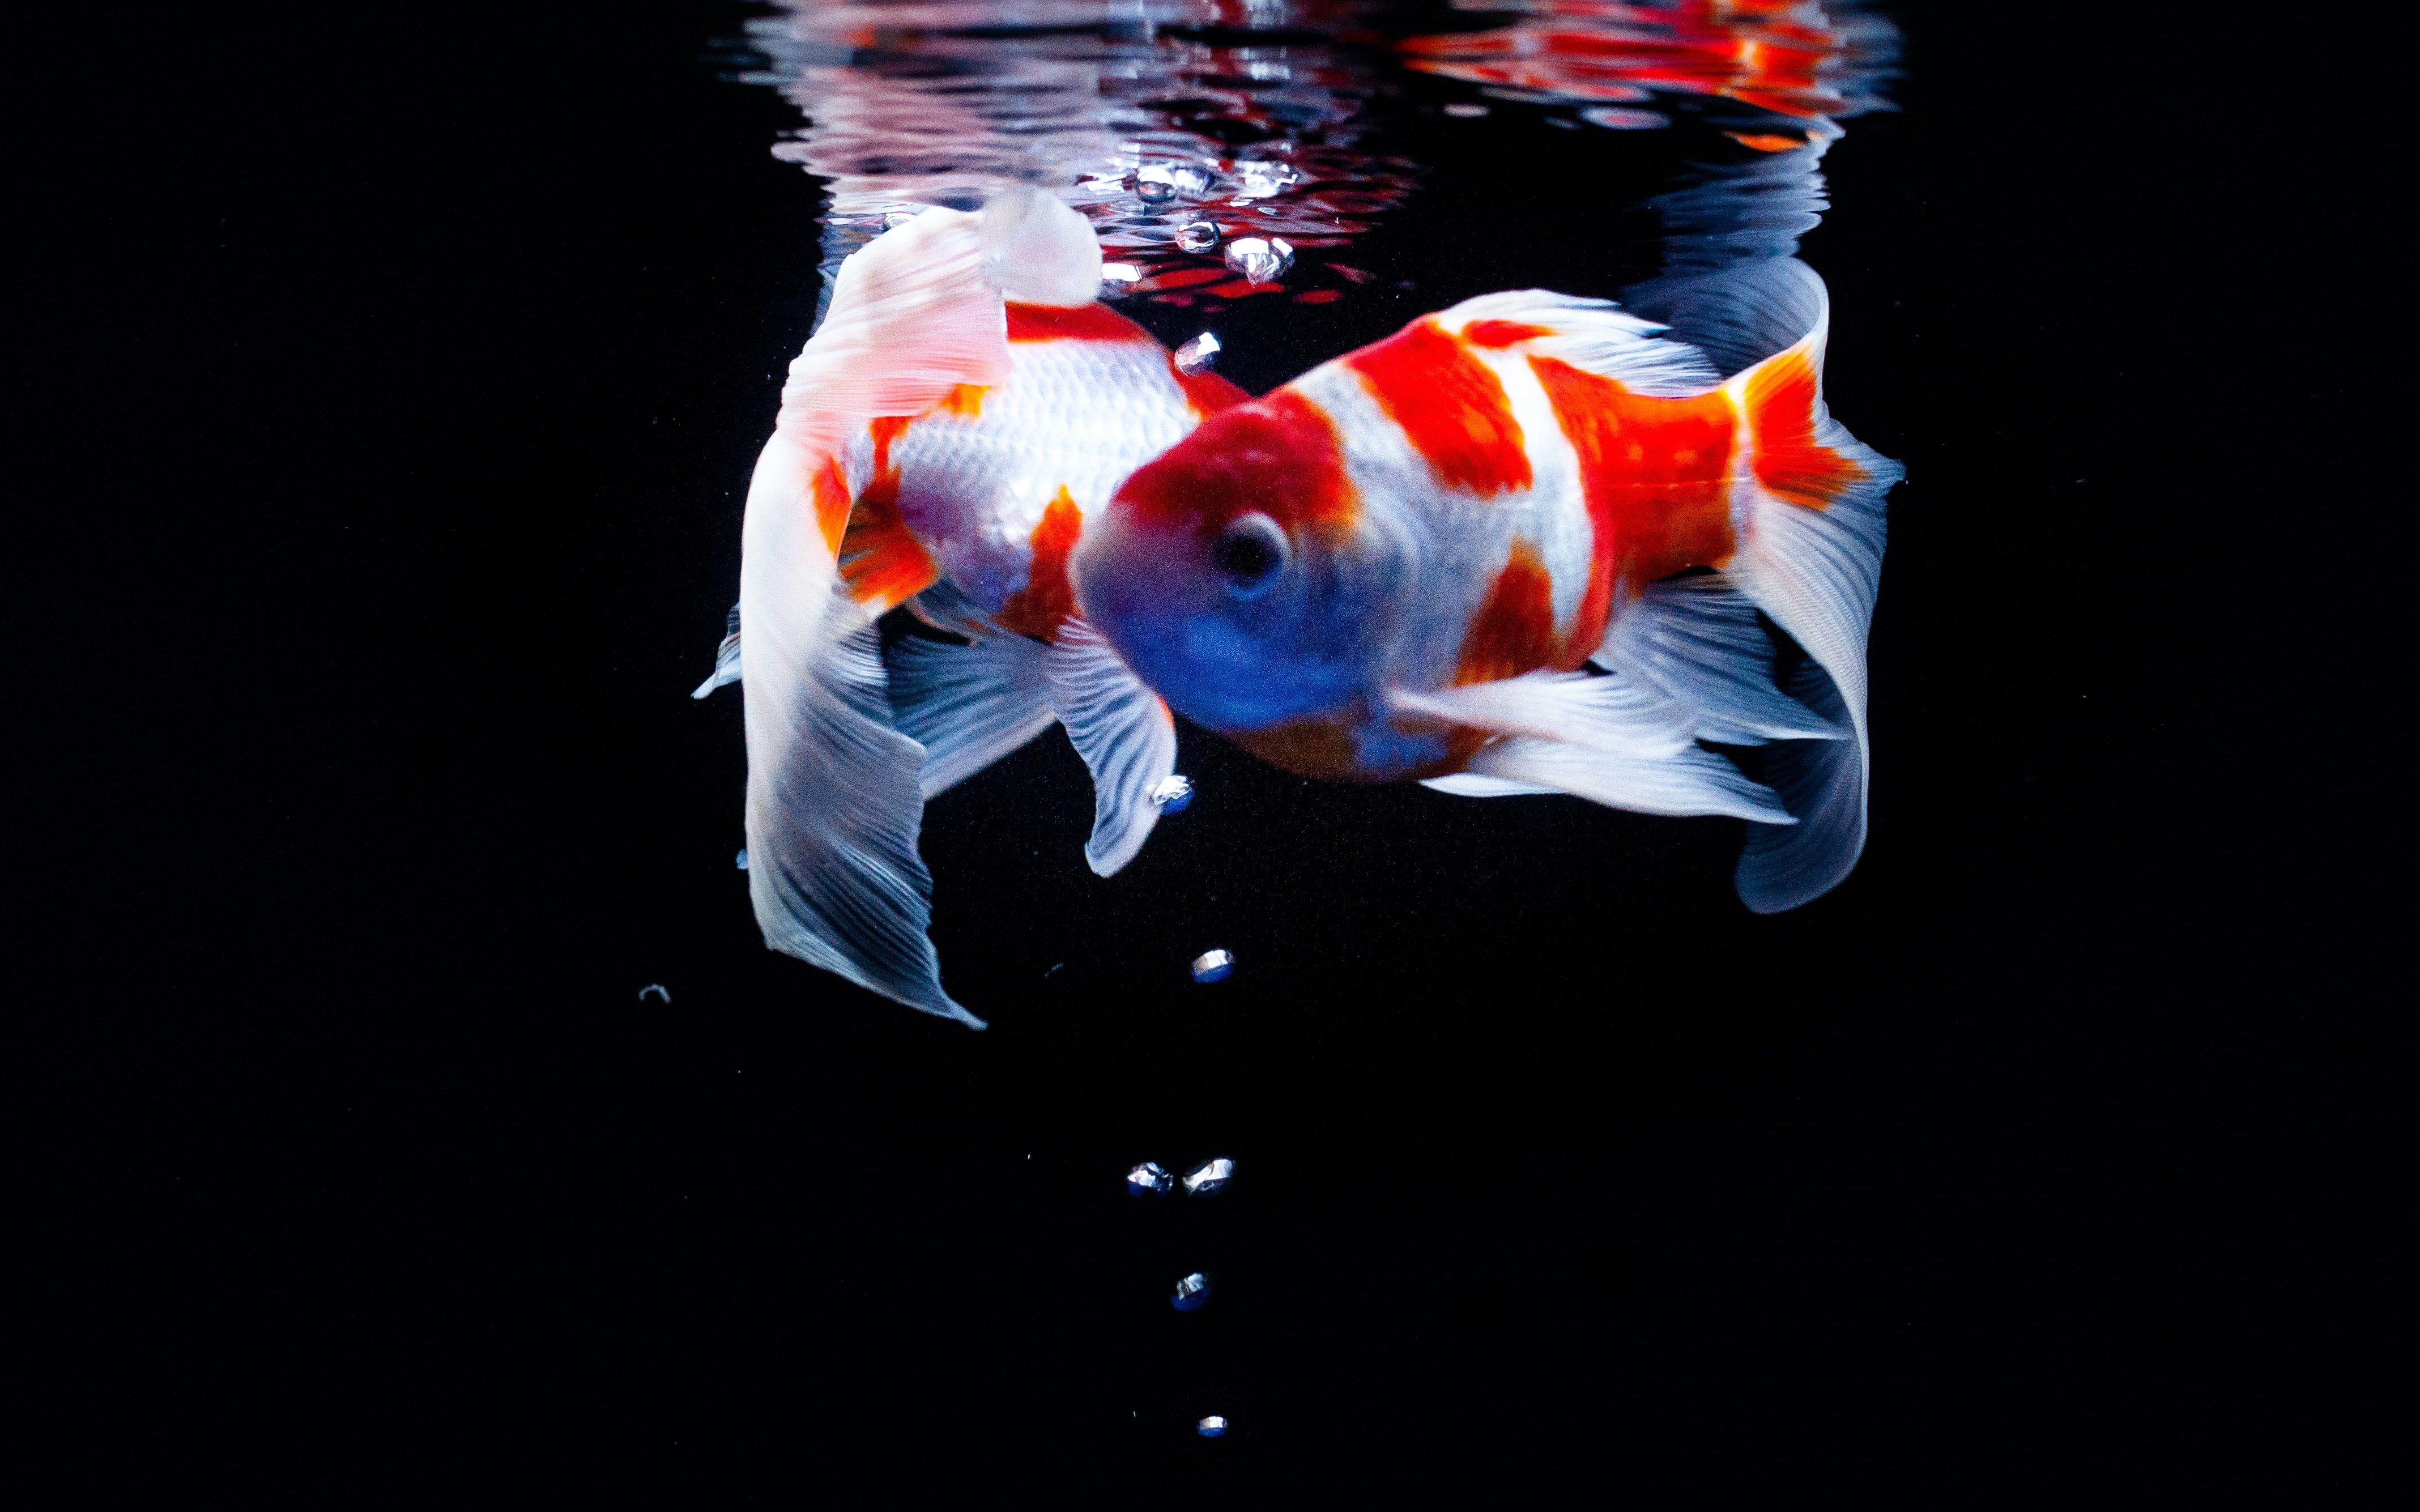 Two fish swimming. Grenfell and systemic Change.